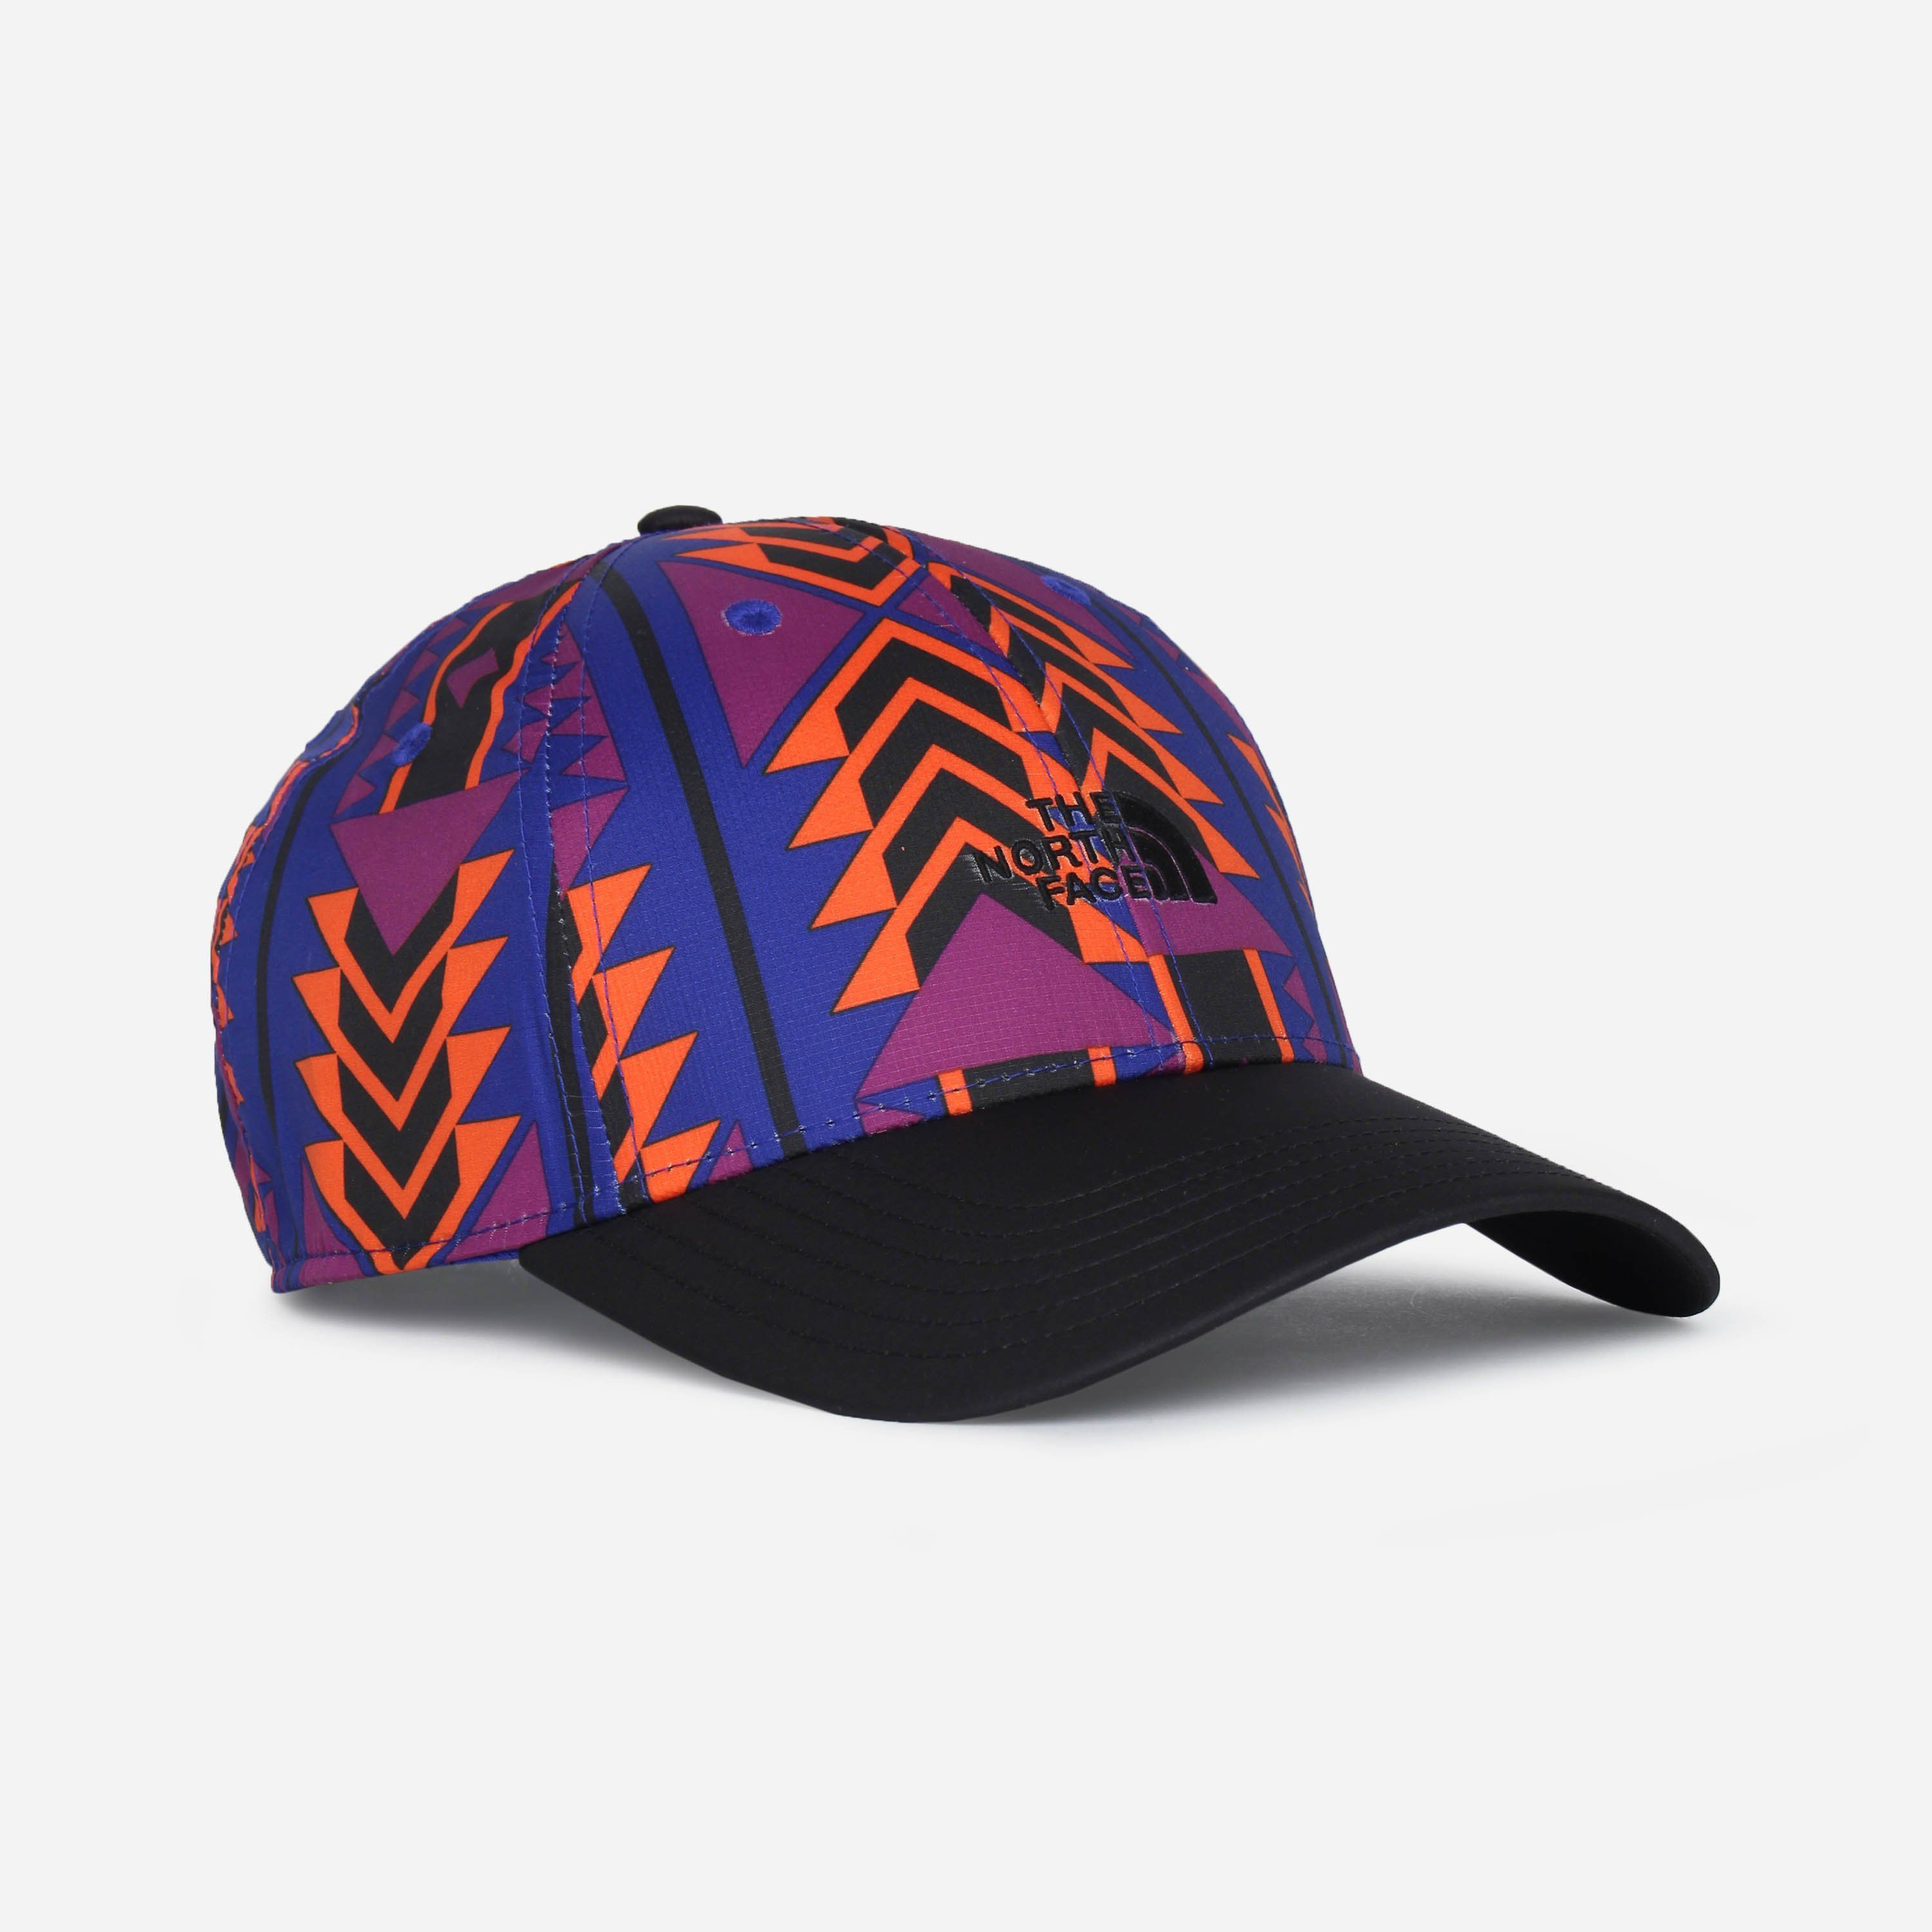 The North Face Rage '92 Tech Cap